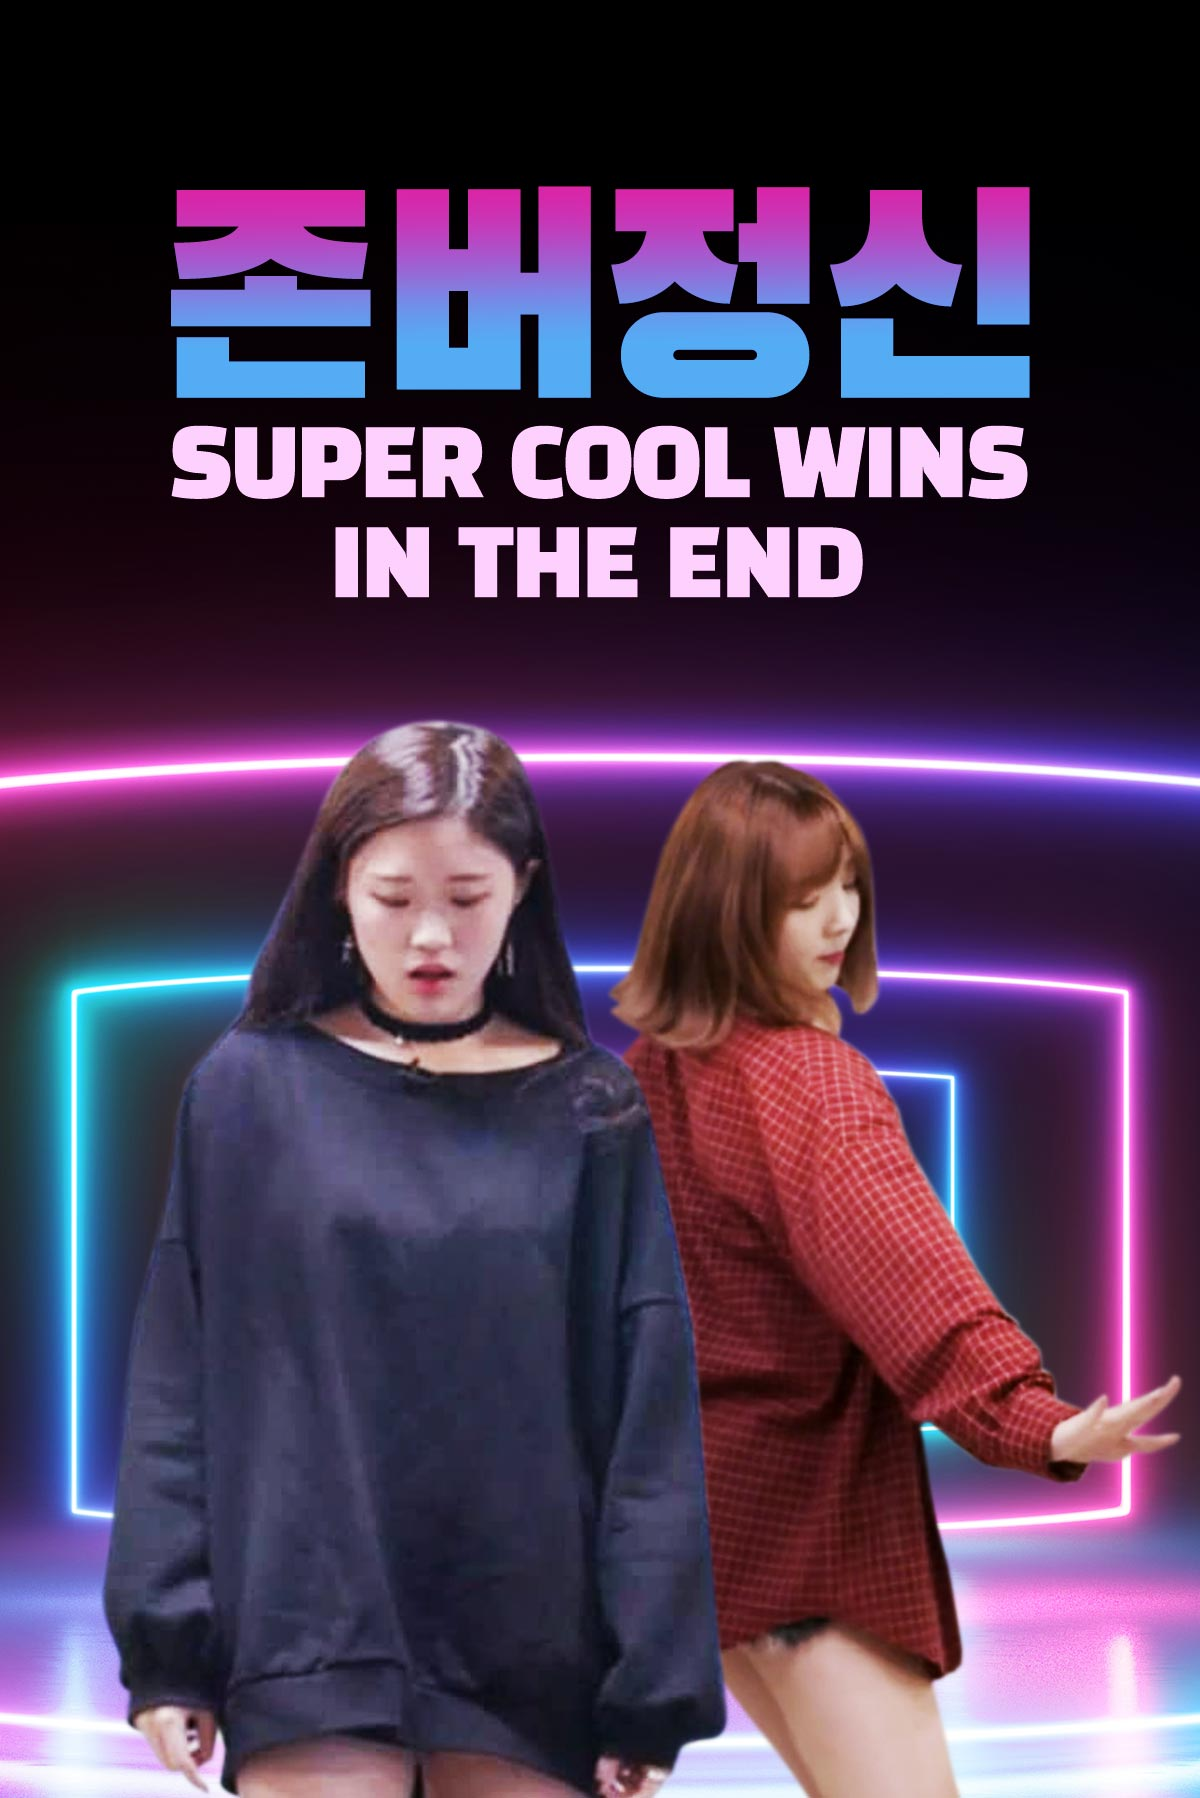 Super Cool Wins In The End